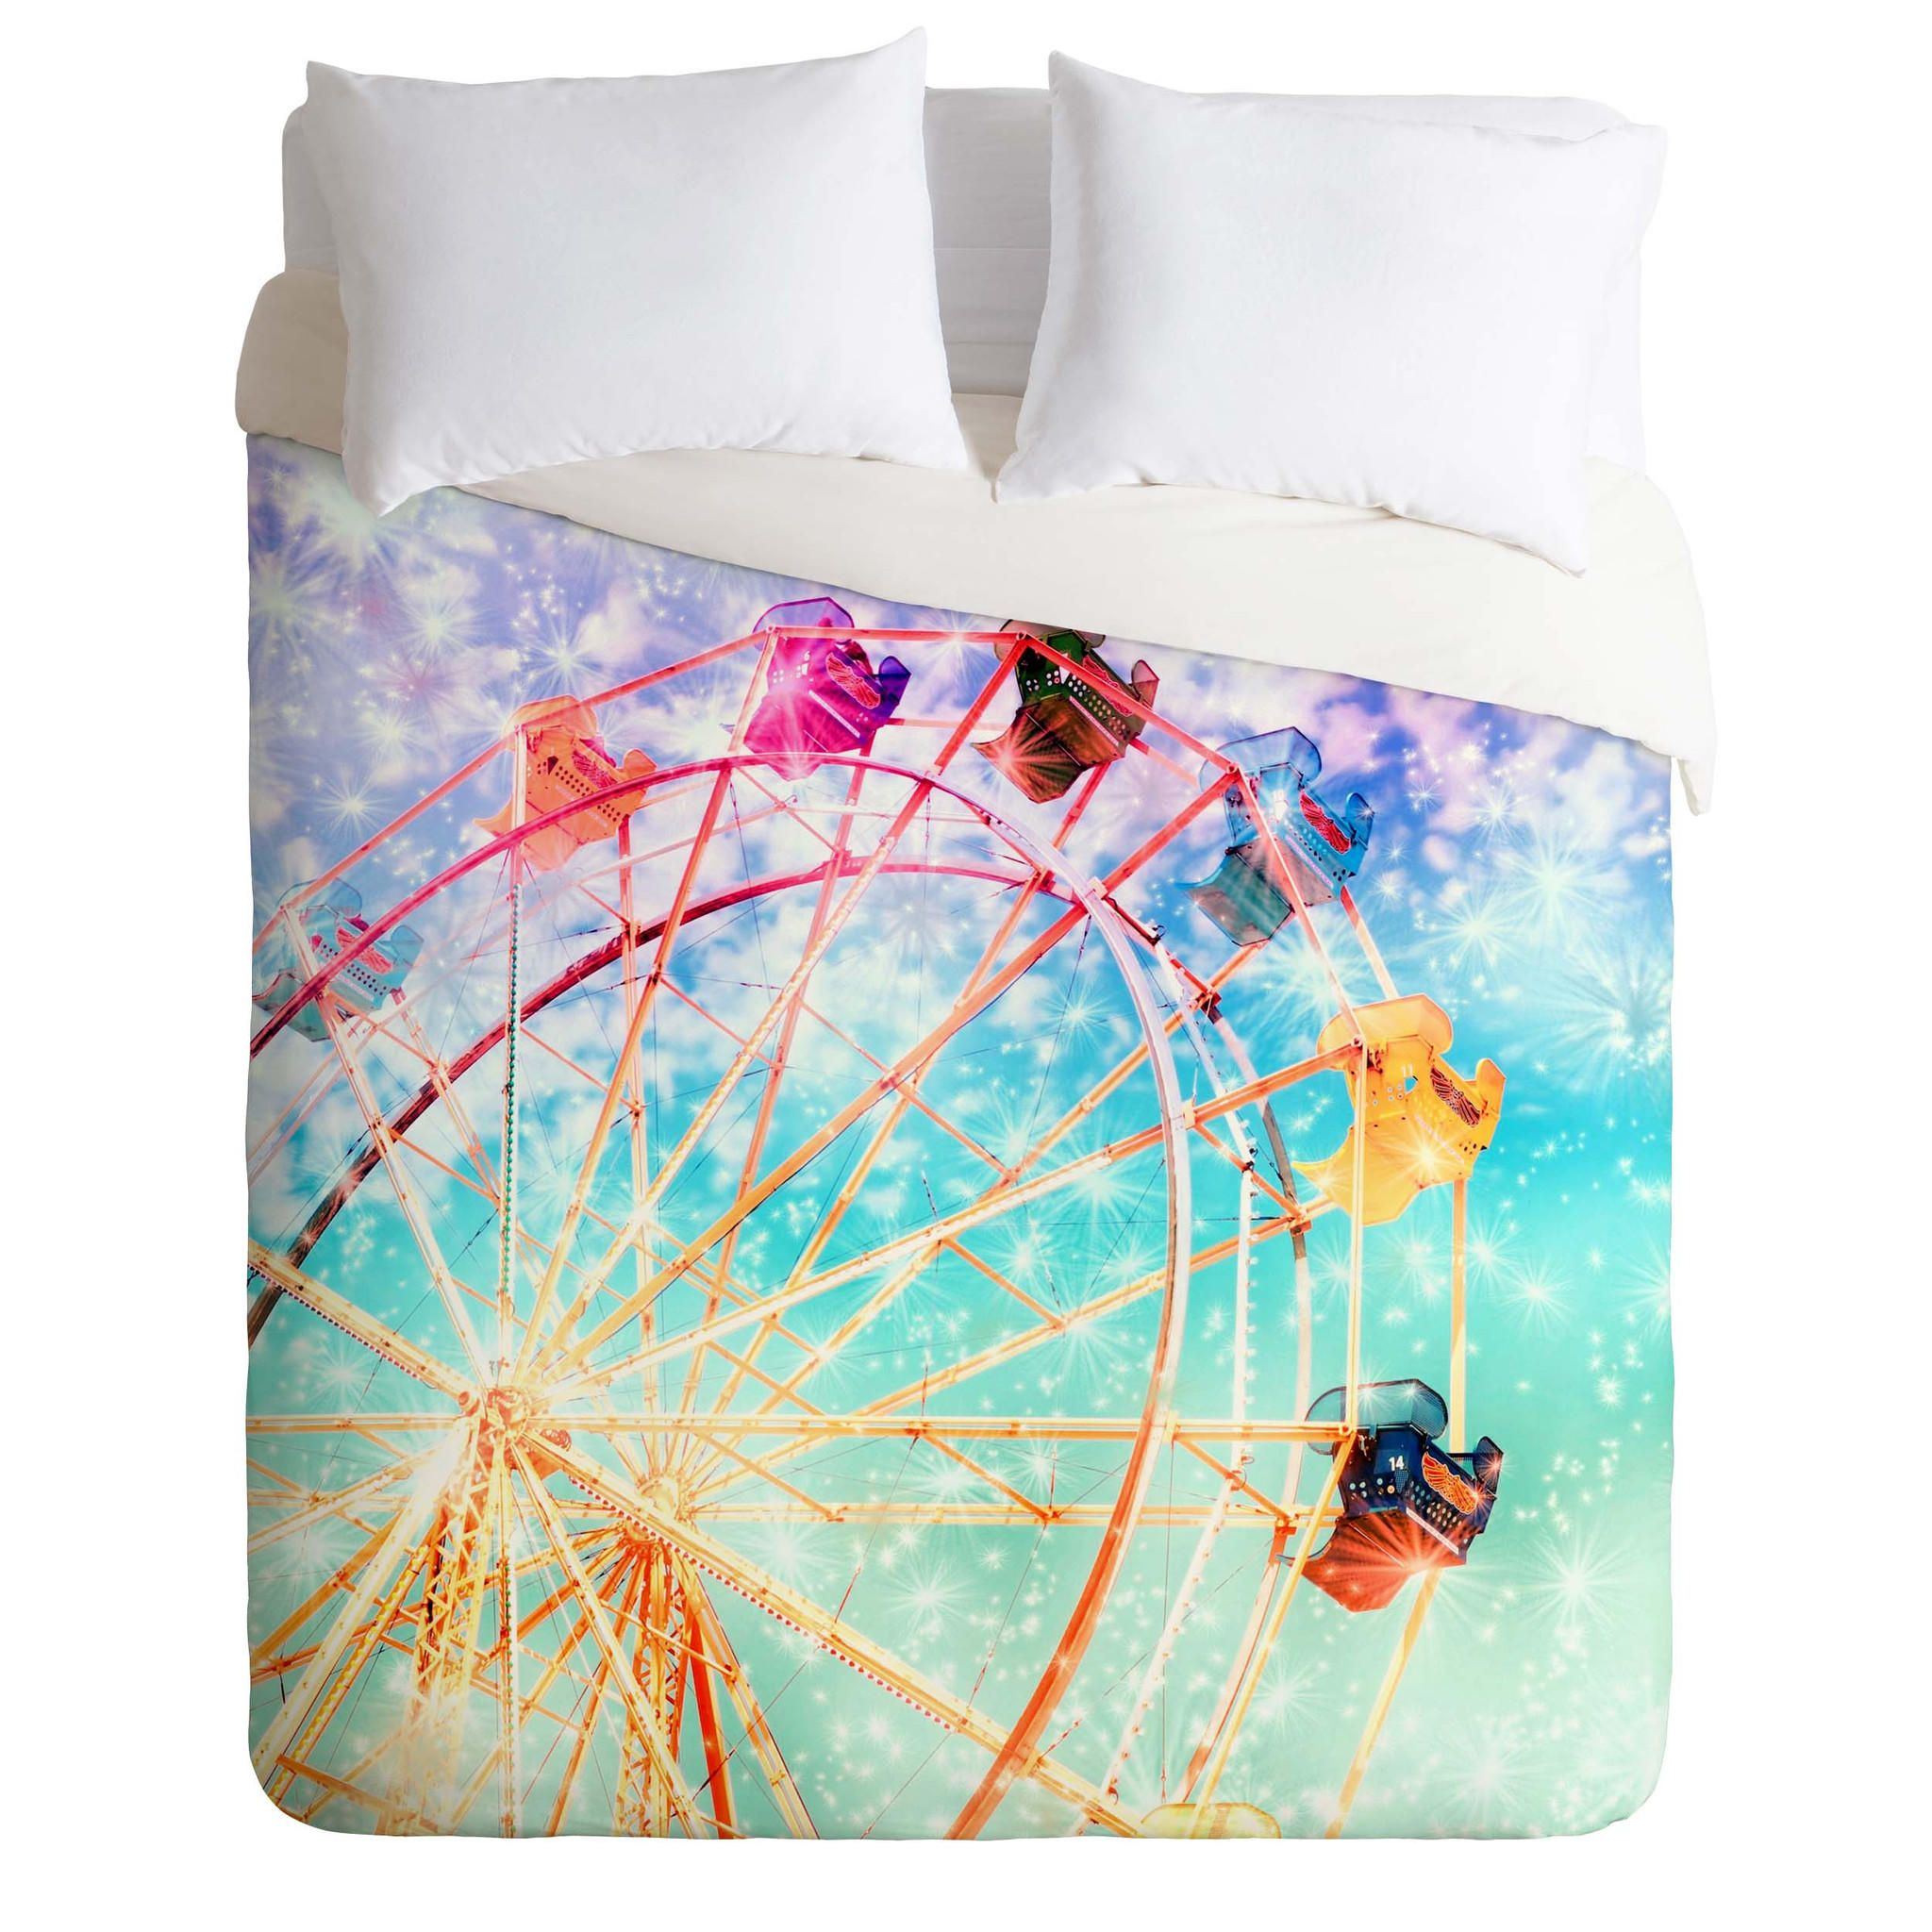 Lisa Argyropoulos Galaxy Wheel Duvet Cover from DENY Designs. Saved to DENY Designs Products. #beautiful #farriswheel #wantwantwant #dorm #home #cool #bedding #decor.